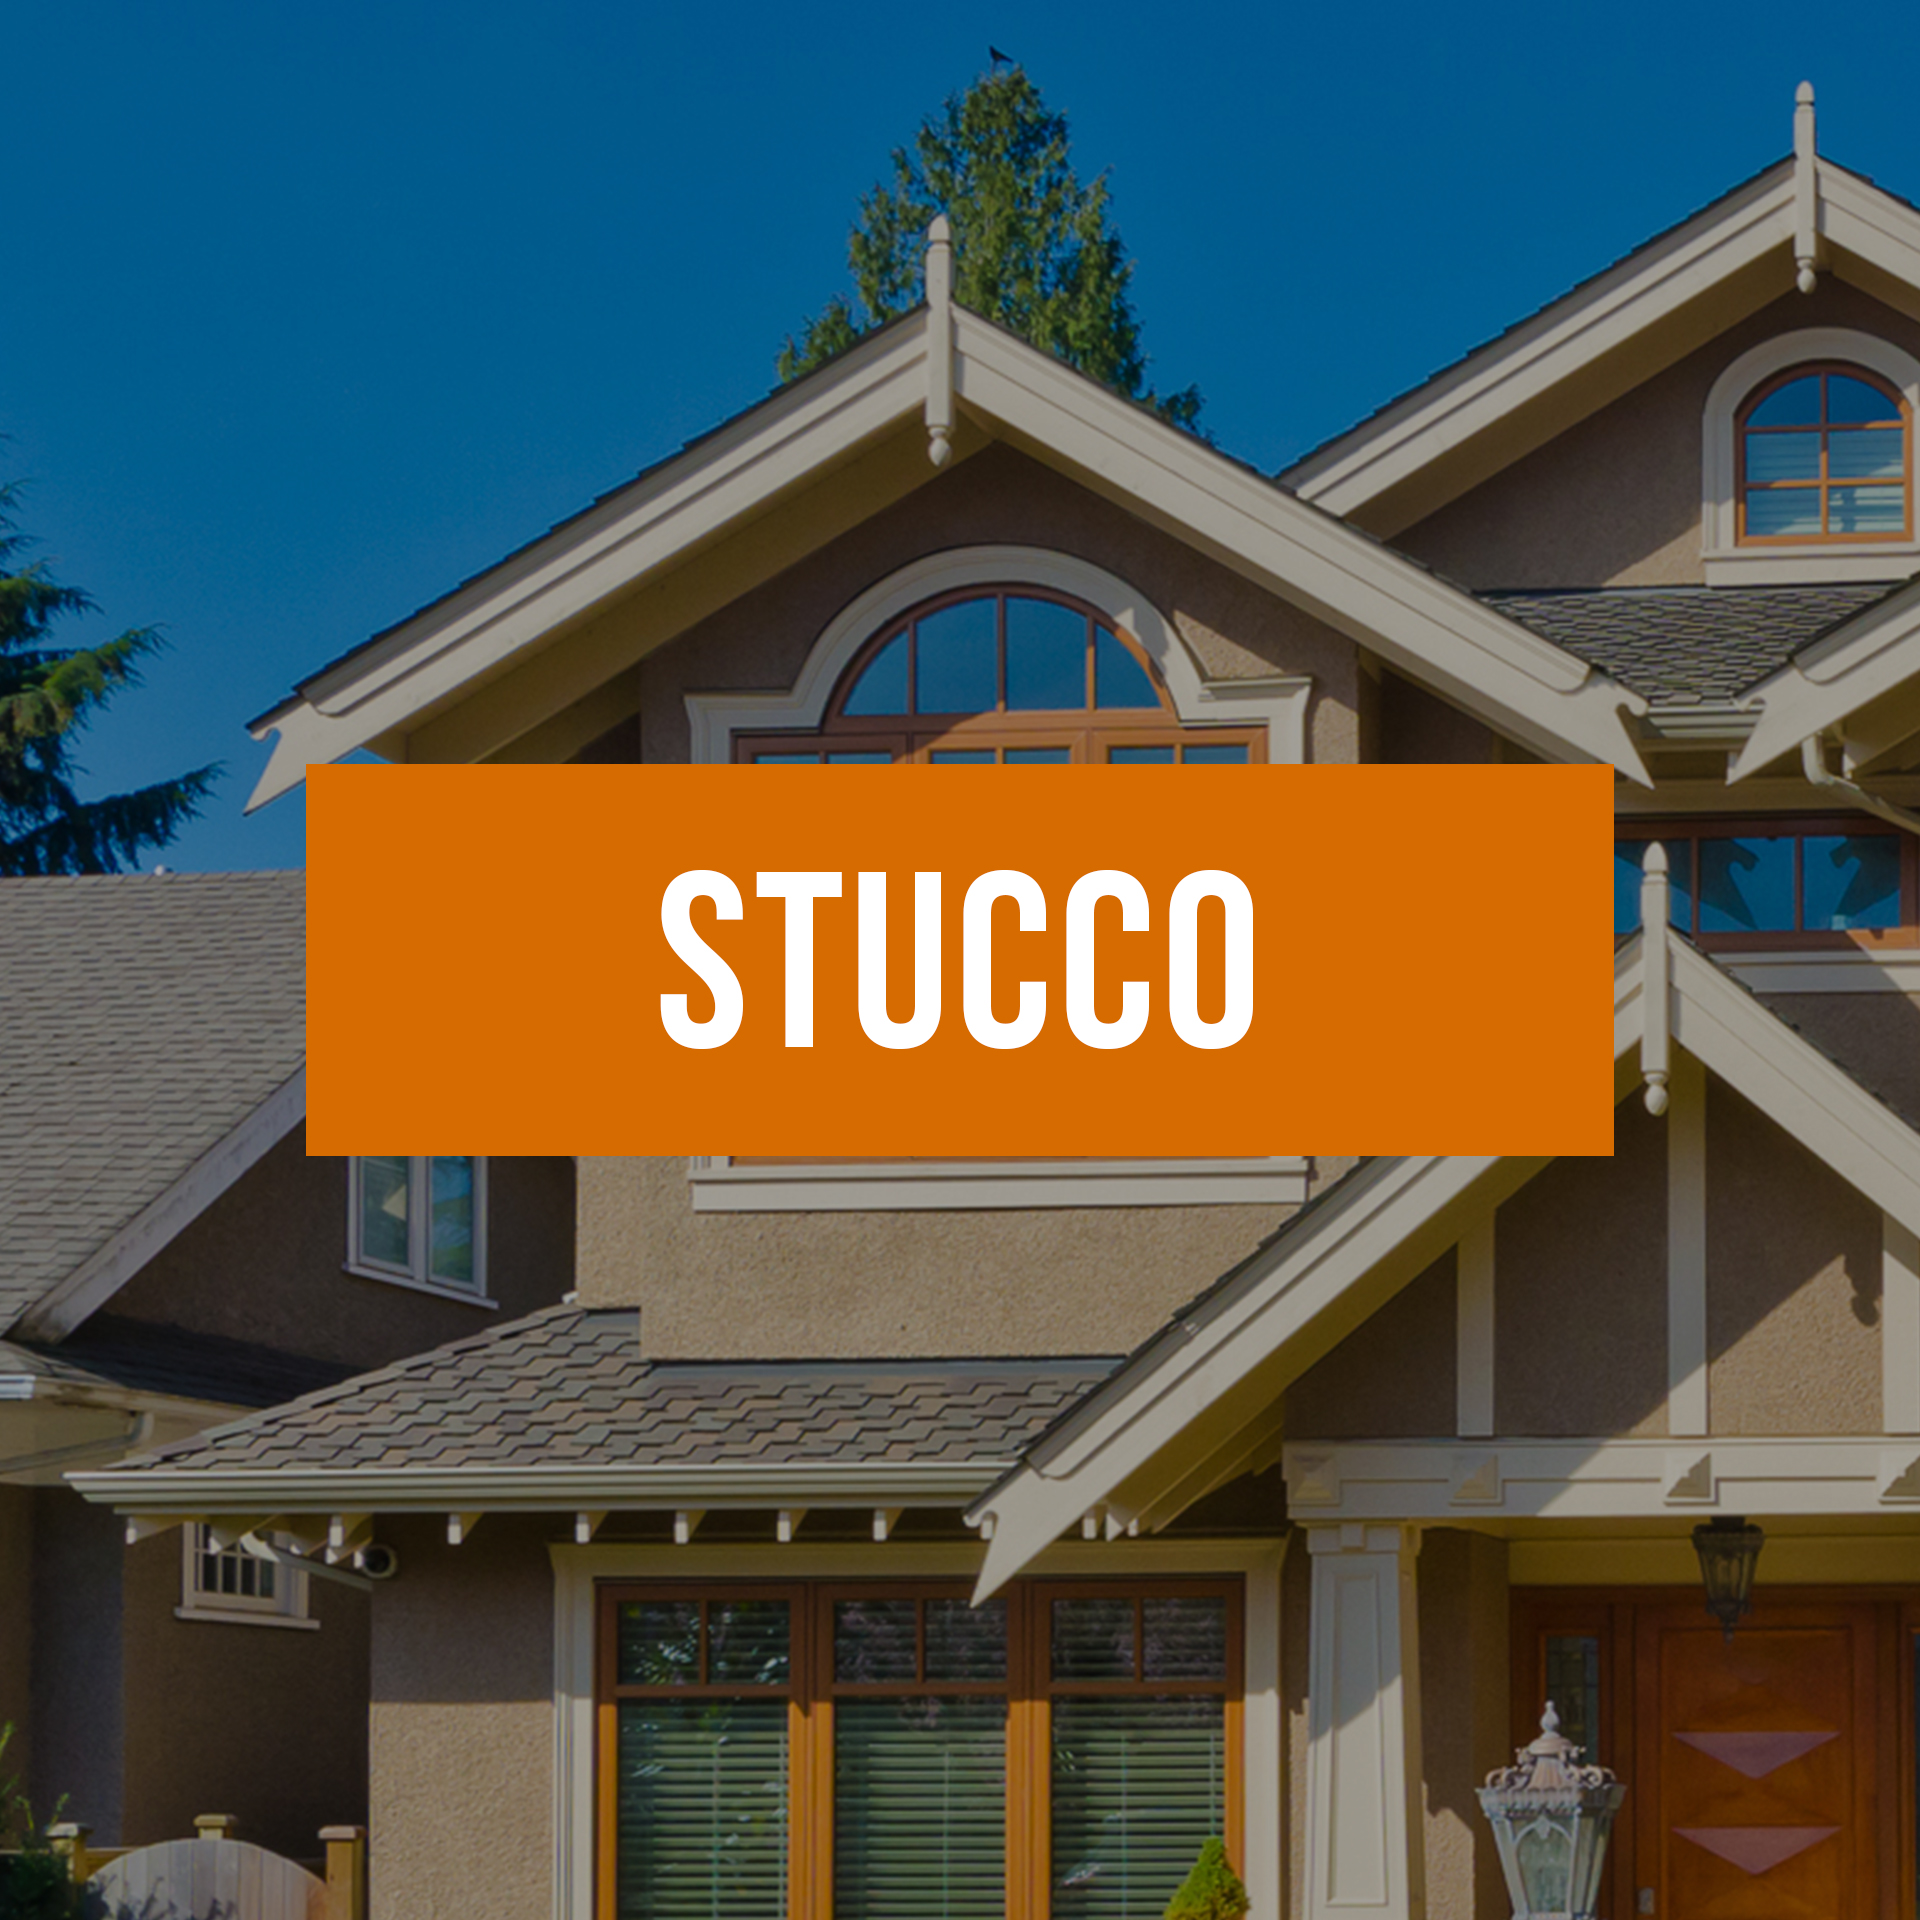 Home_Pro_Painting_Stucco.jpg